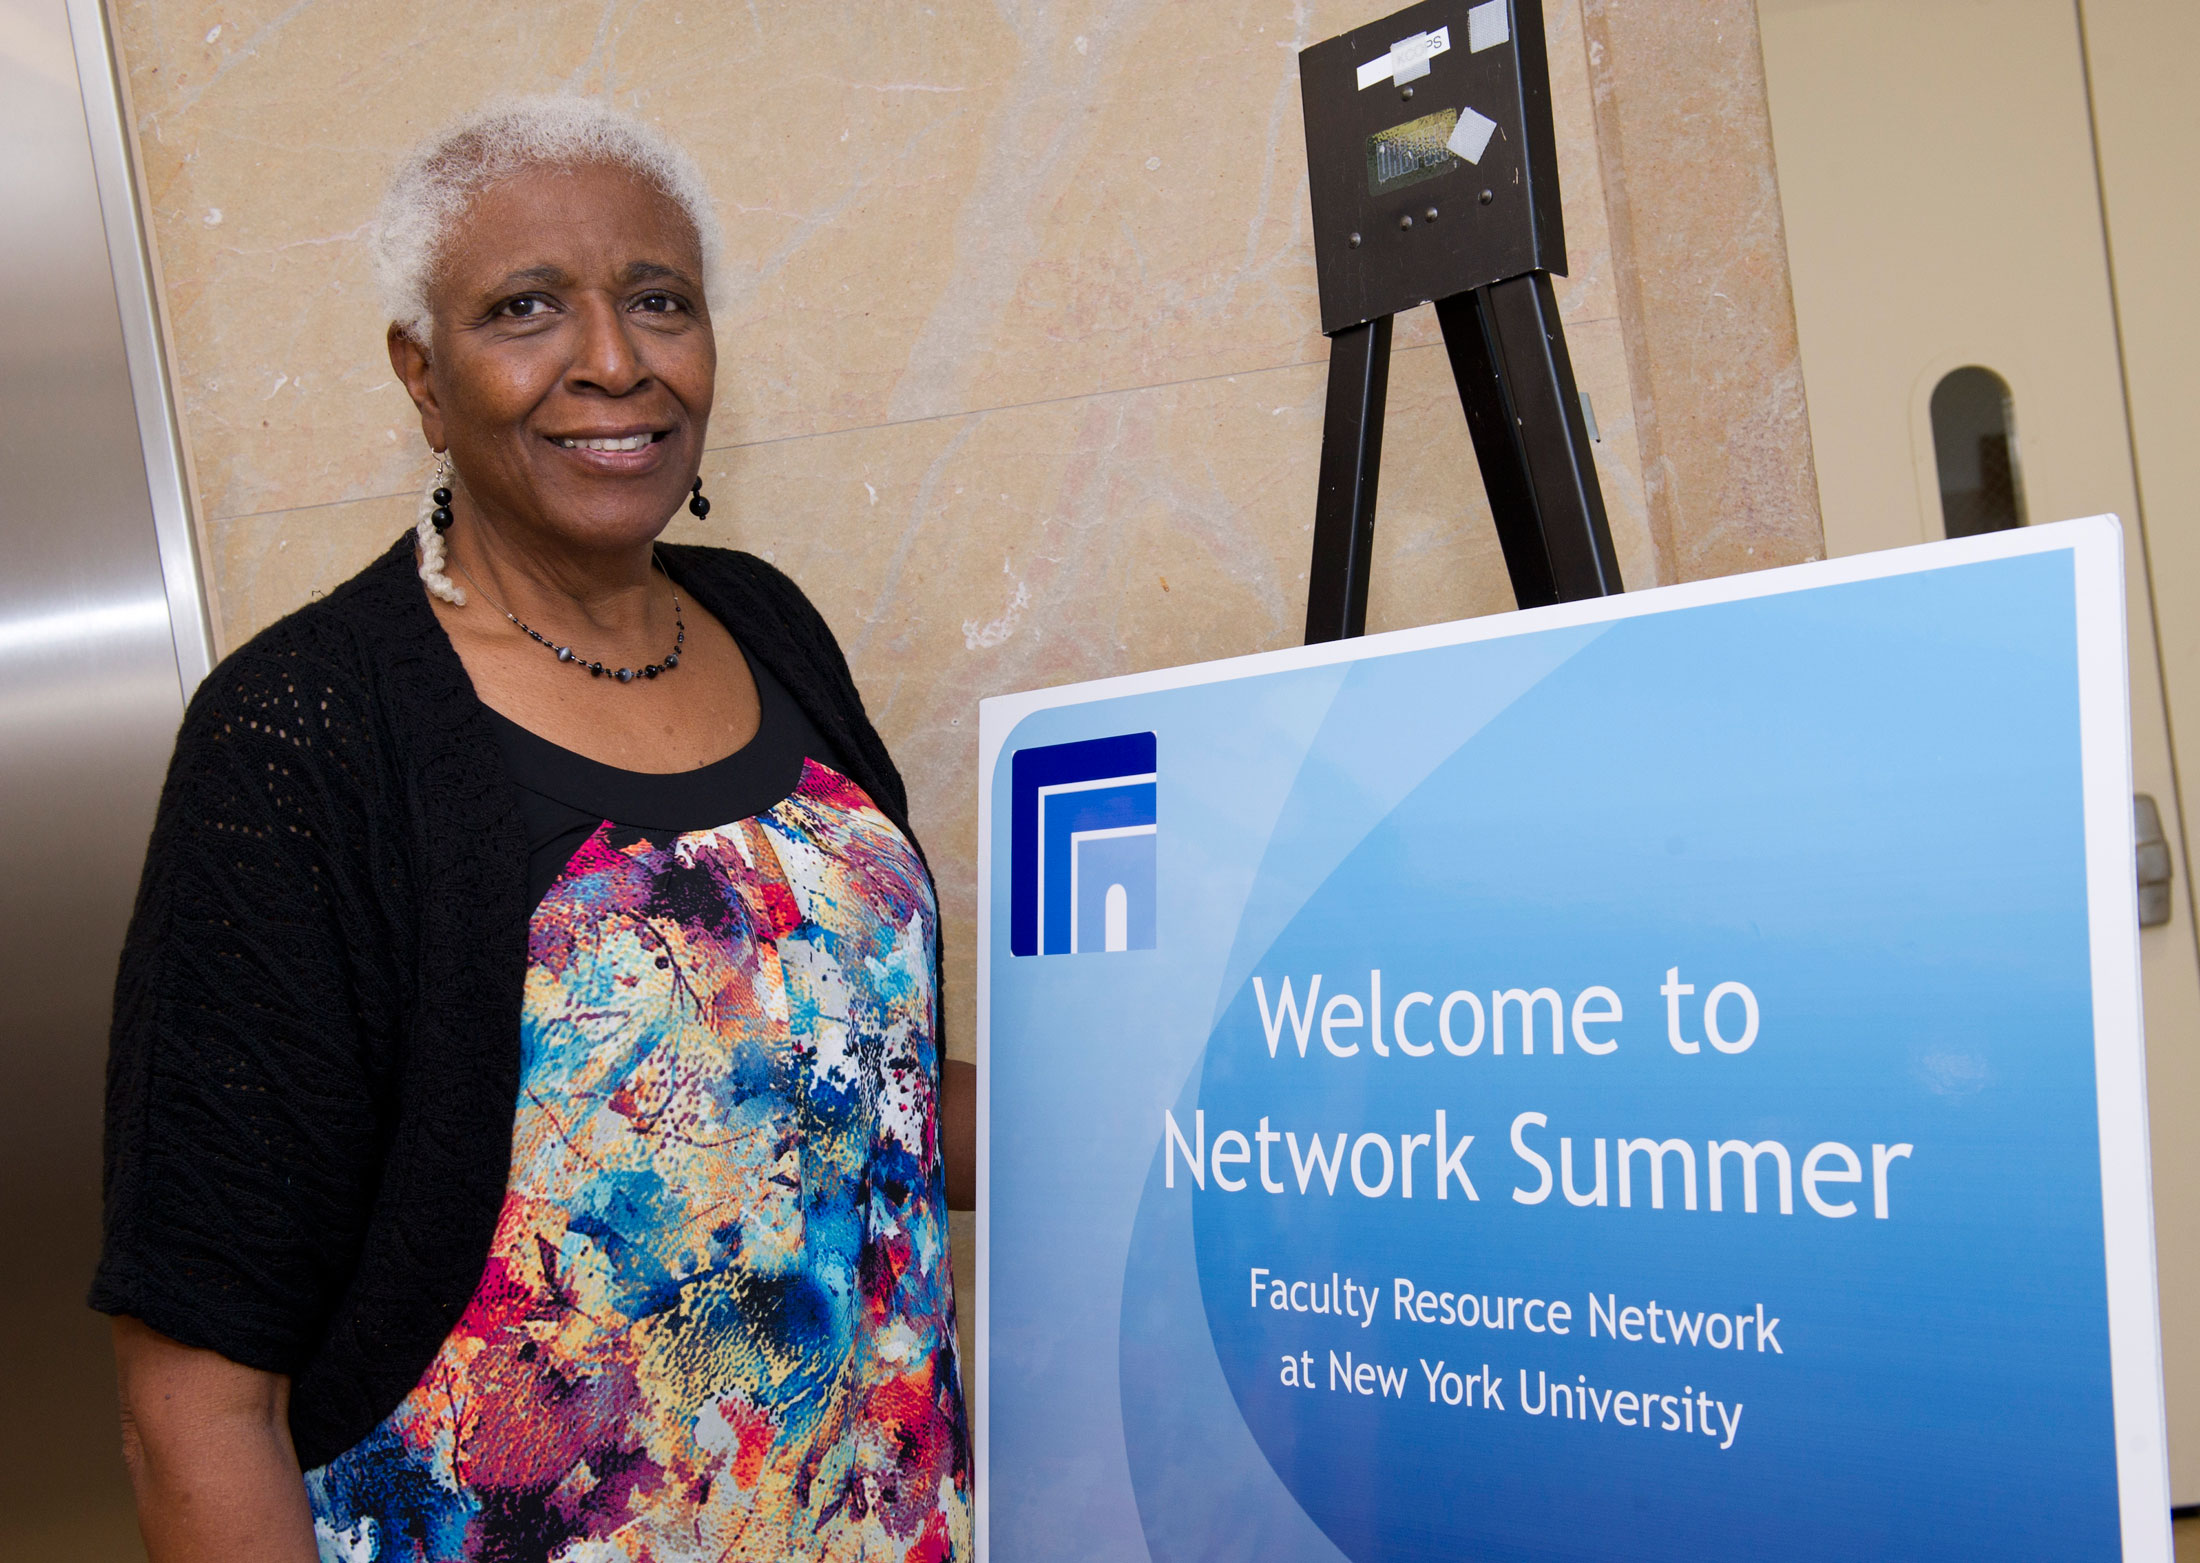 Previous Network Summer Seminars | Faculty Resource Network